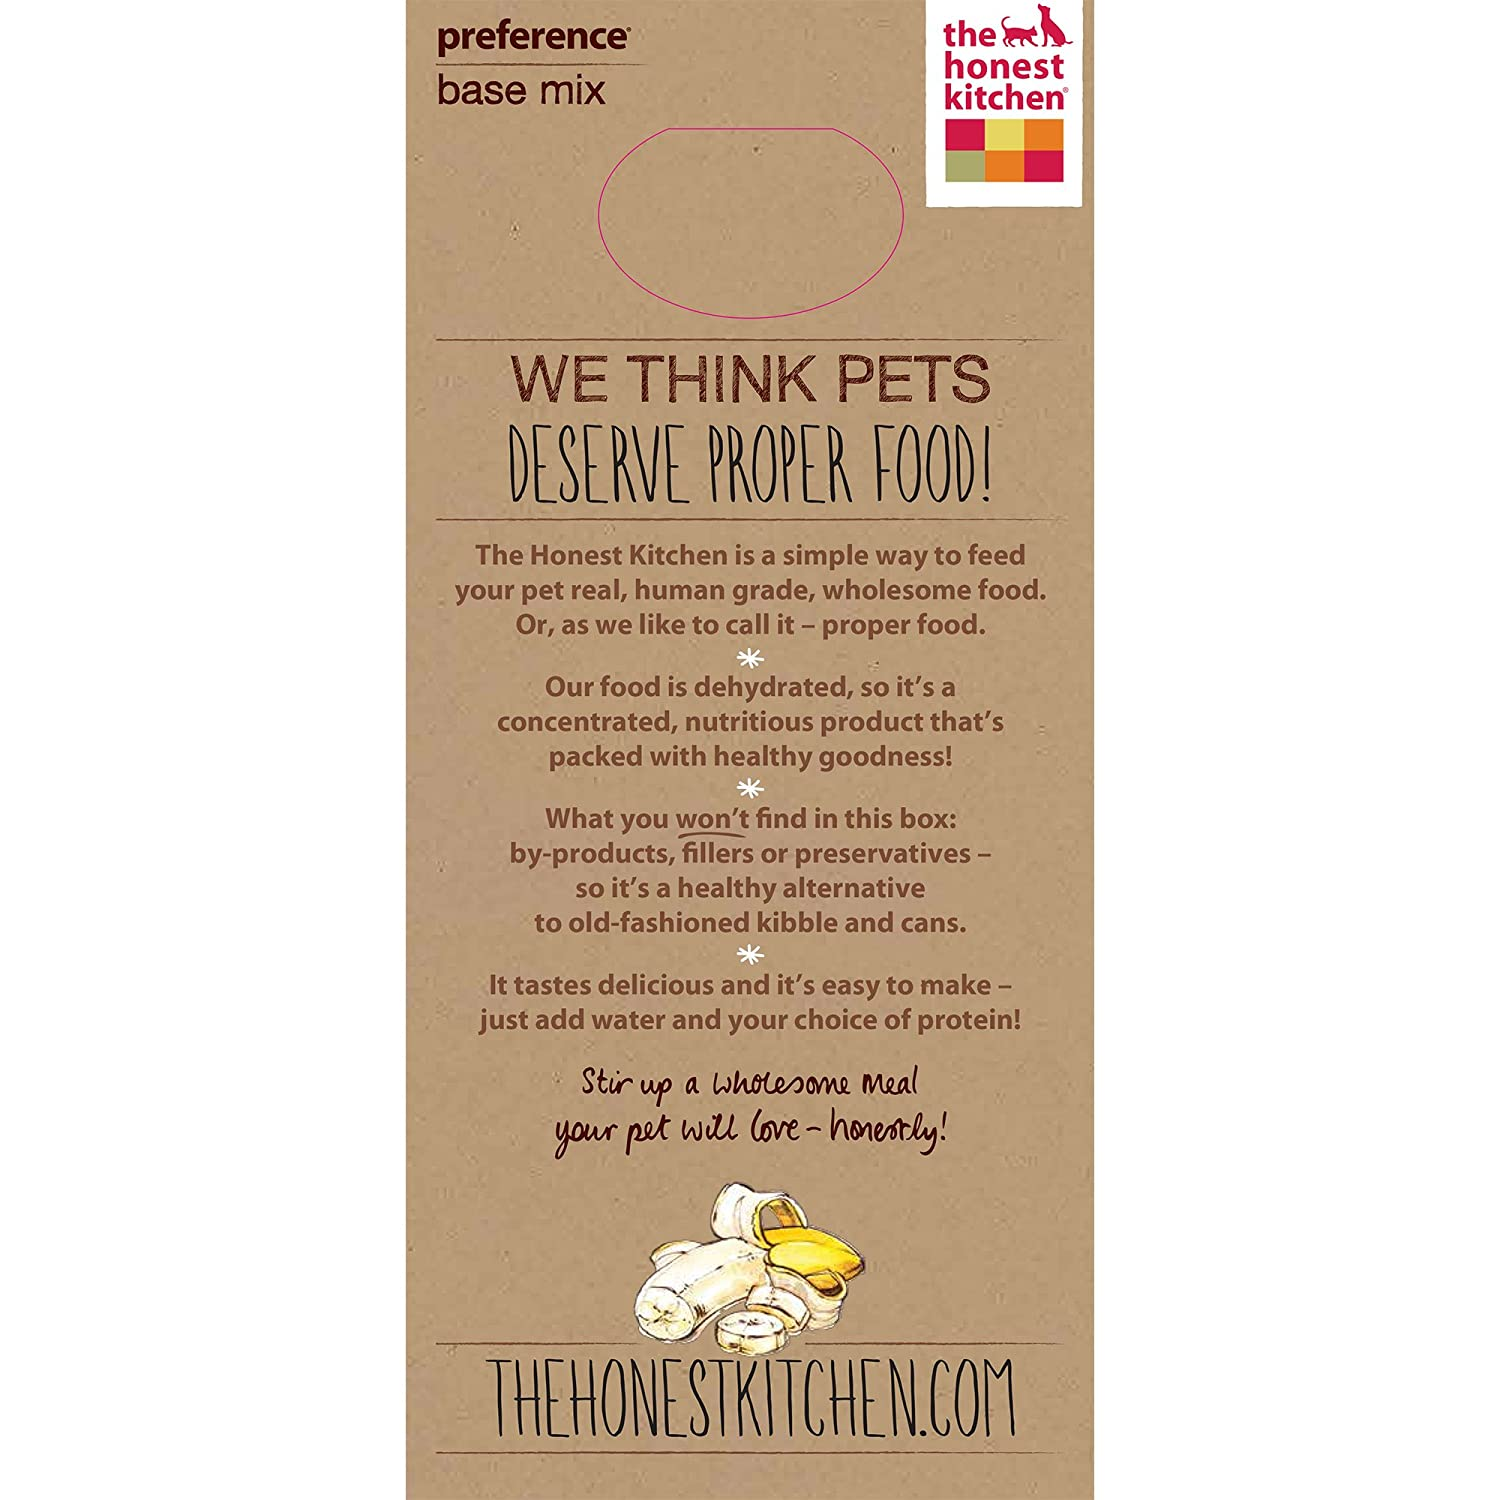 the honest kitchen preference dehydrated grain free base mix dog